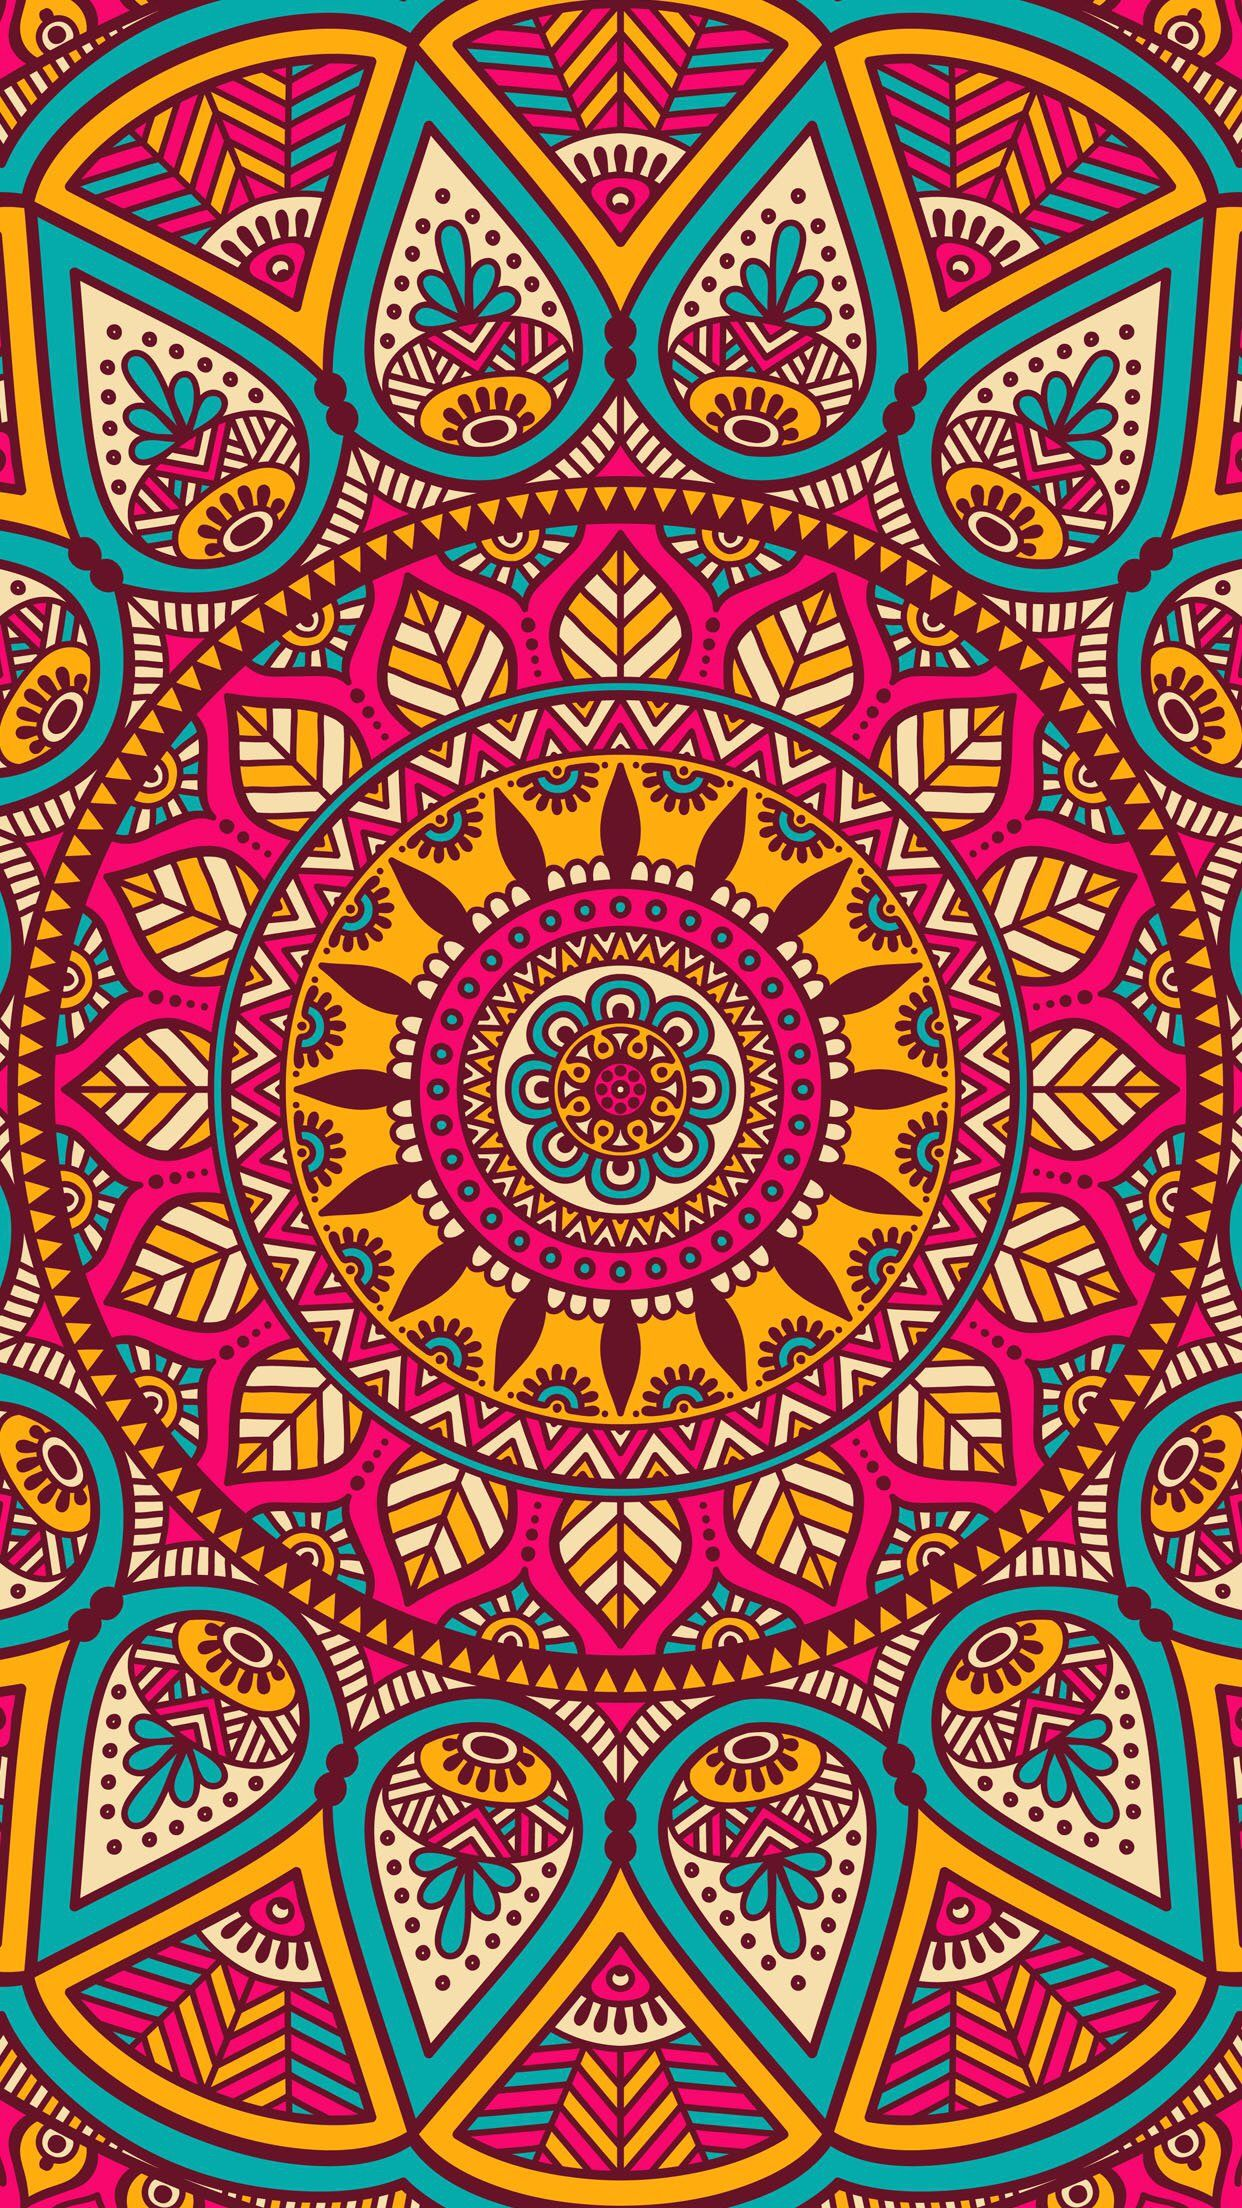 Wallpaper iphone mandala -  Patterns Mandalas Iphone Backgroundswallpaper